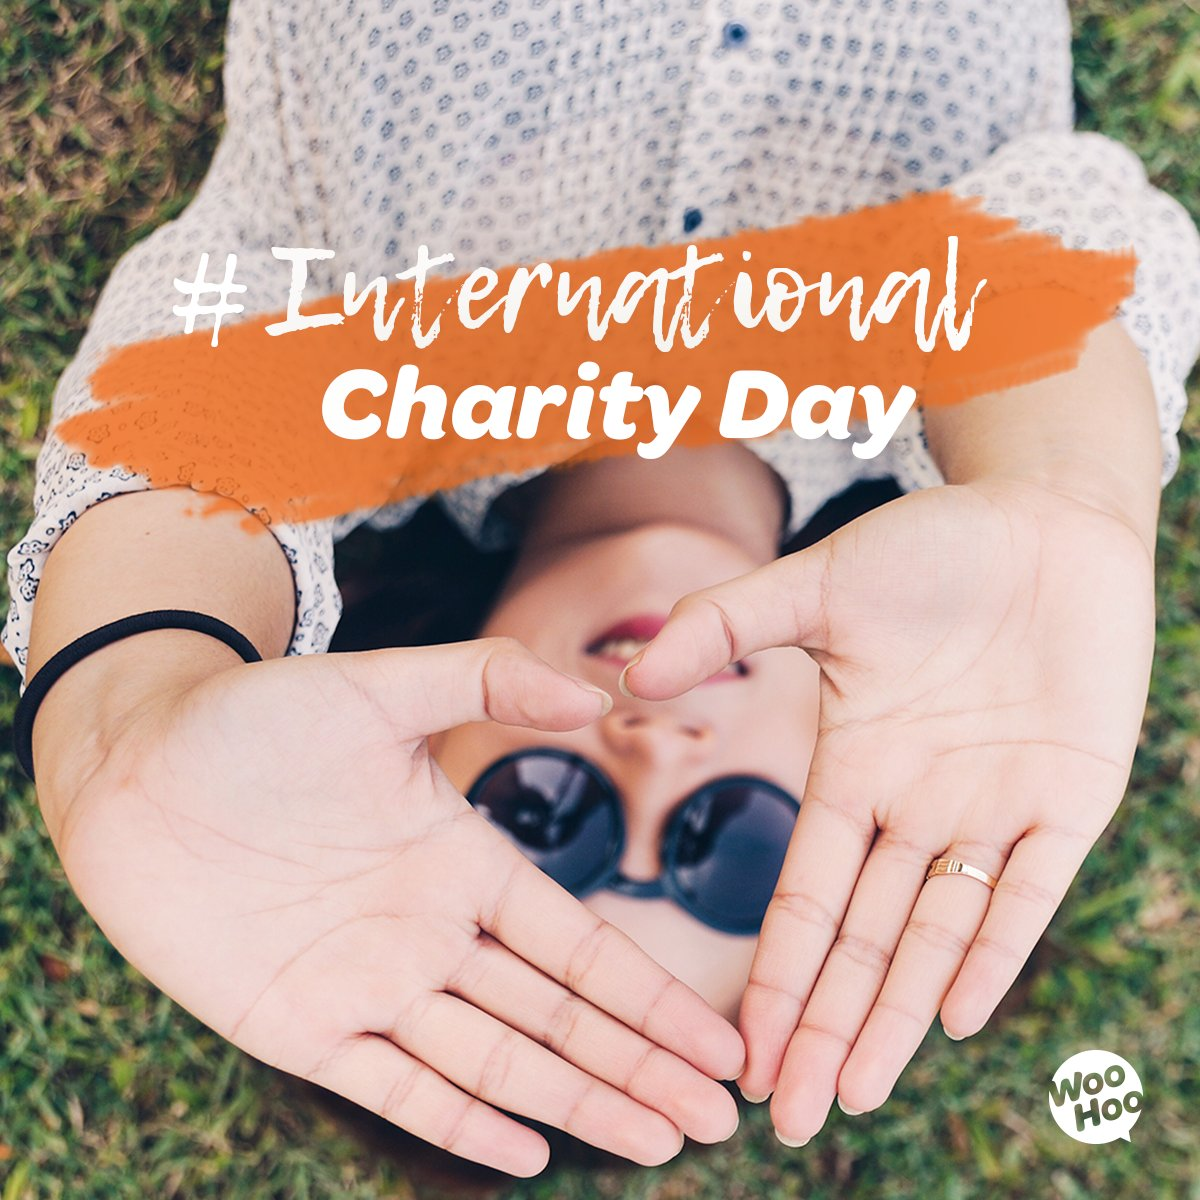 Happy #InternationalCharityDay! Can you supercharge your donations?Find out more http://bit.ly/DonationTaxCredits …  #WooHoo